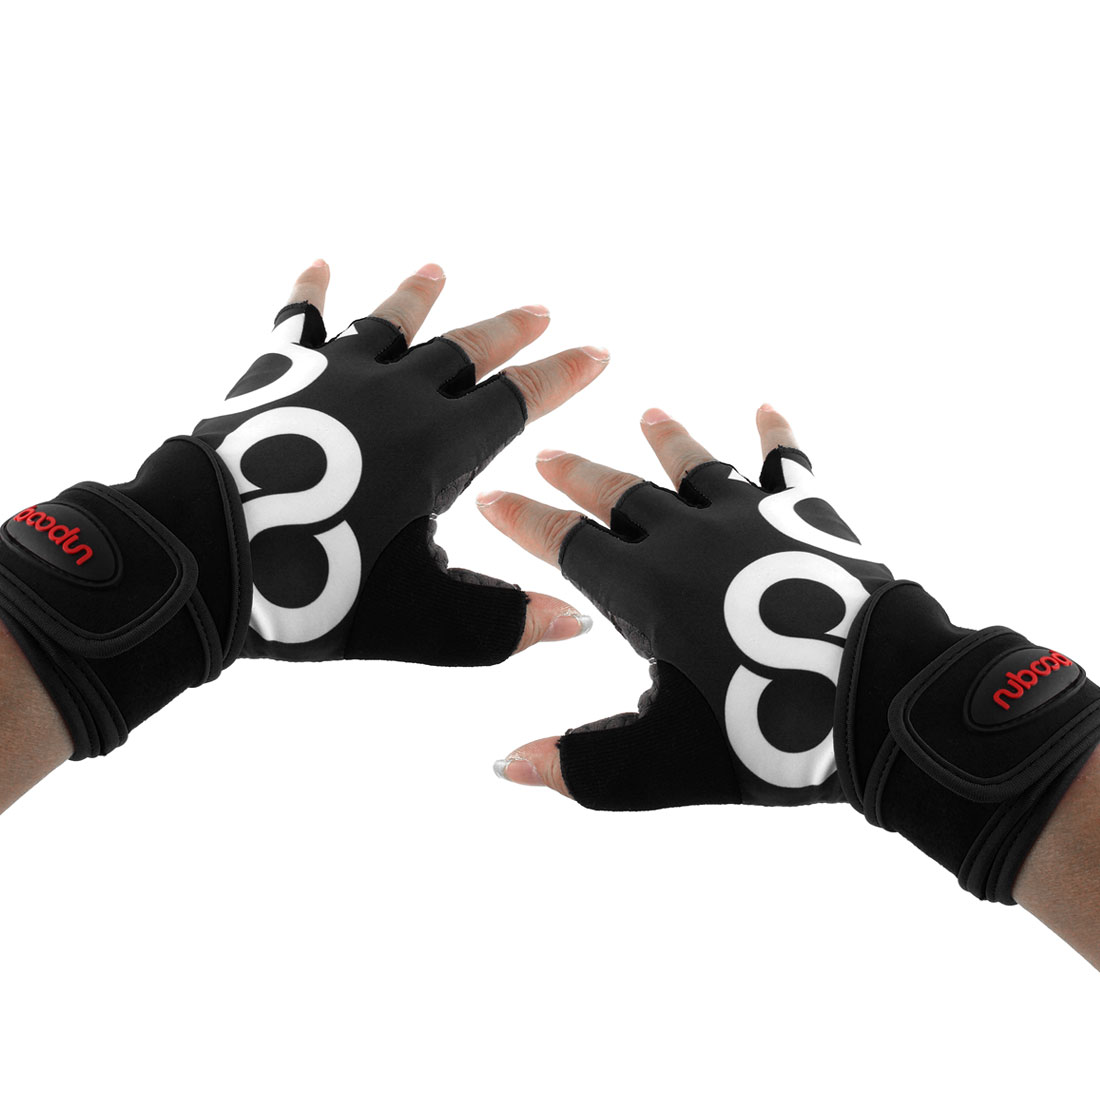 Men Polyester Exercise Sports Weightlifting Training Workout Half Finger Fitness Gloves Black XL Pair